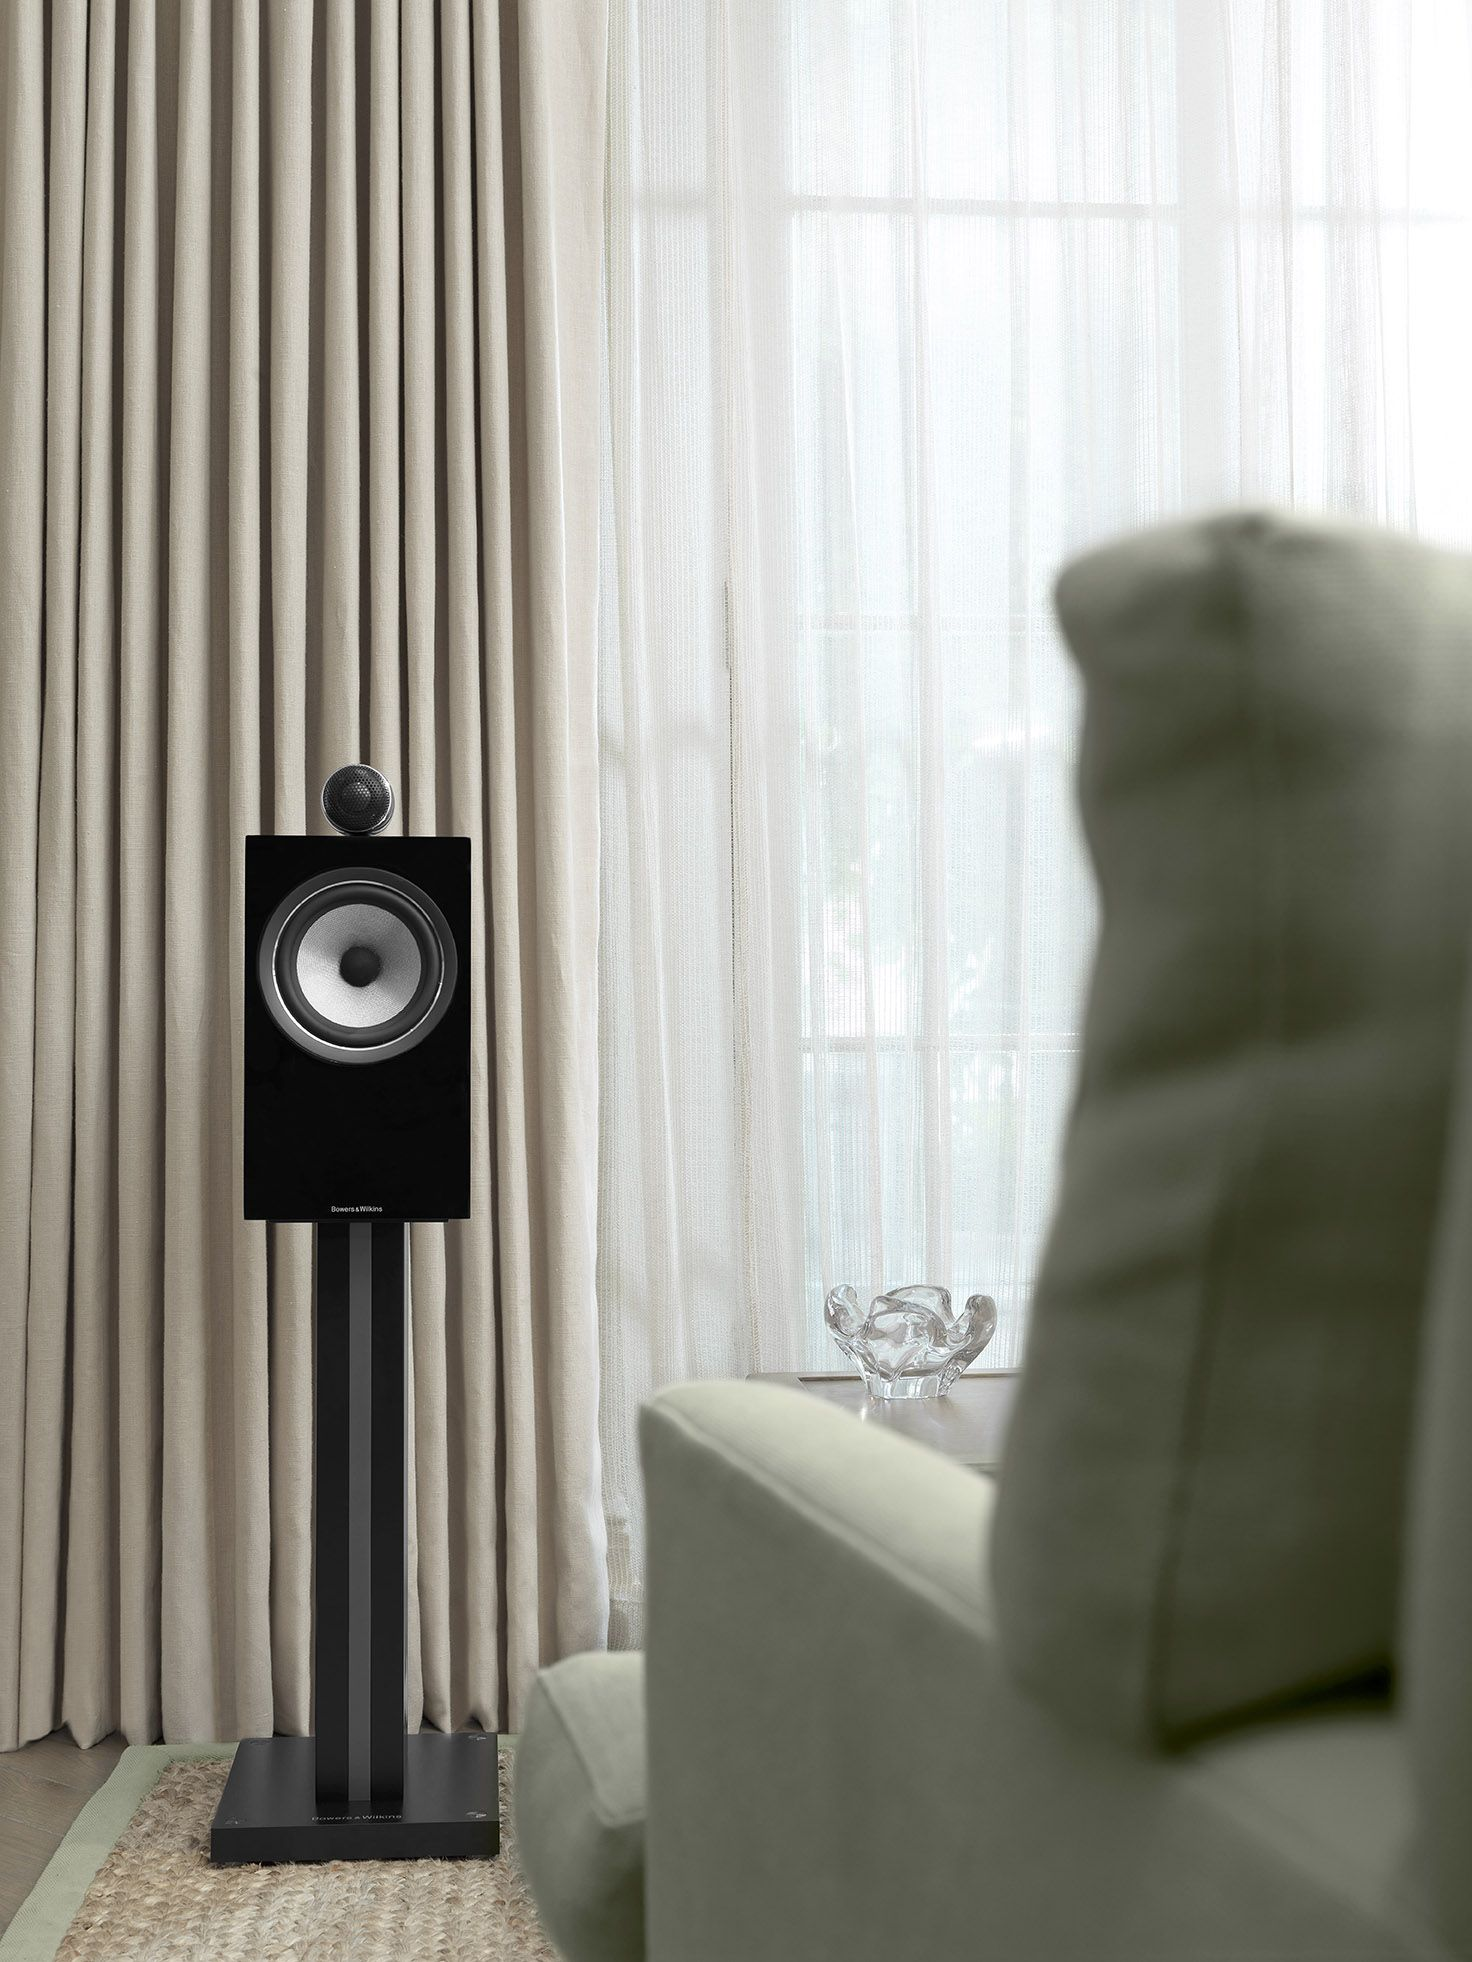 Hear Music As The Artist Intended It The 700 Series Reveals More